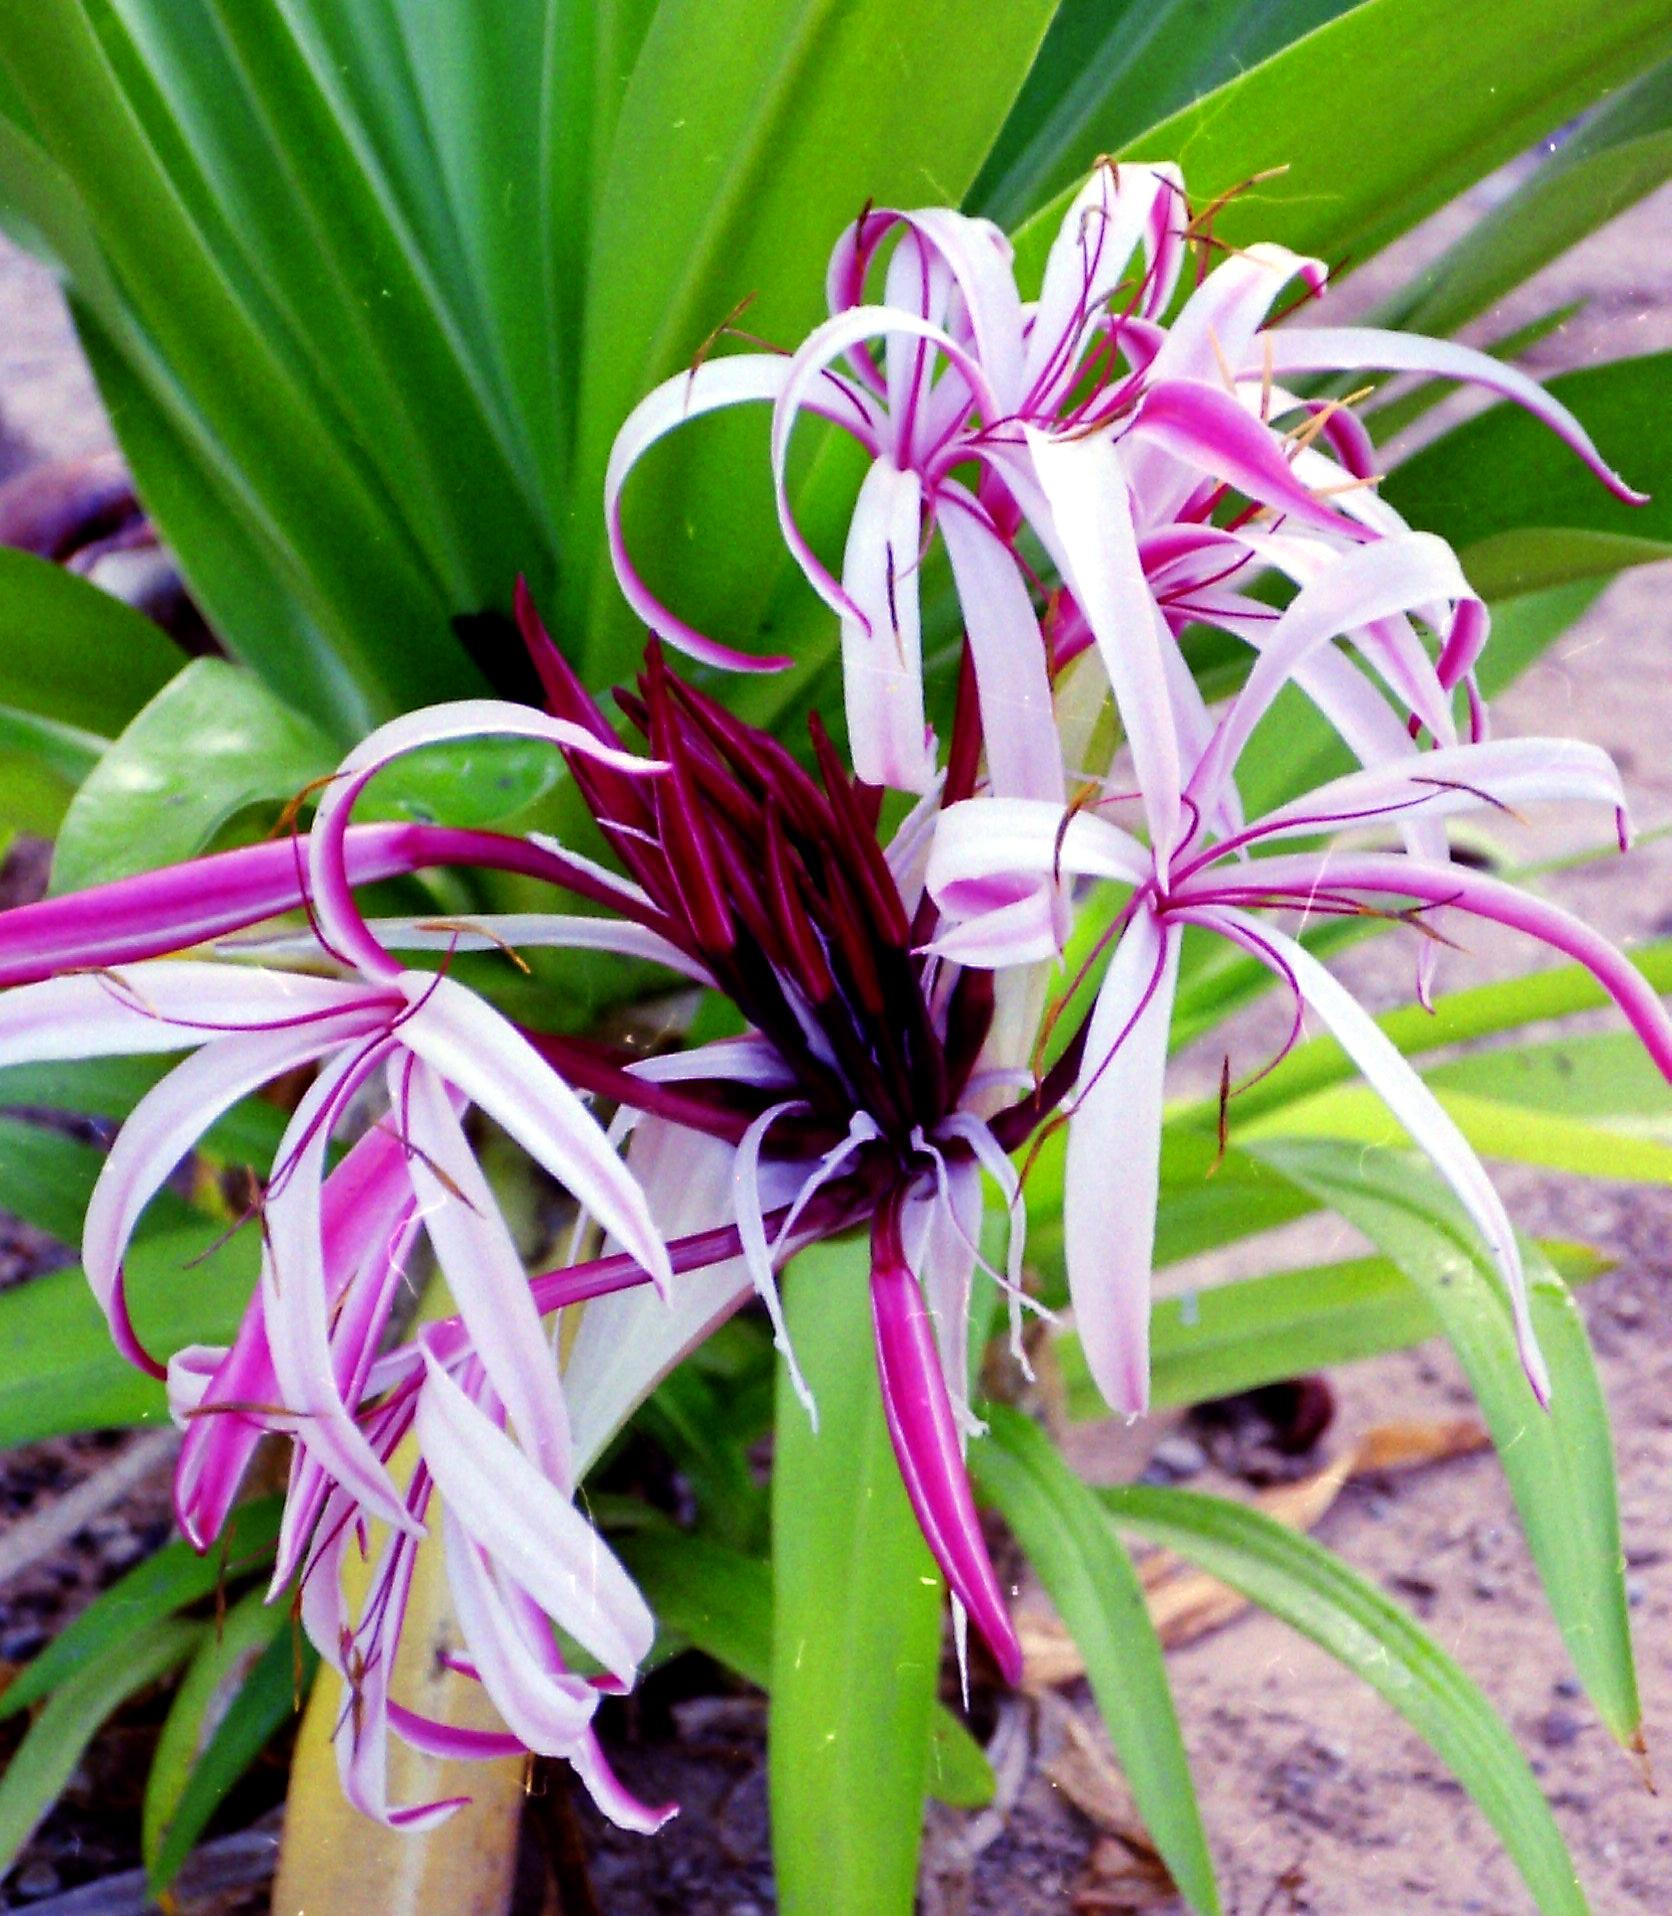 Looks Like A Purple Crinum Lily